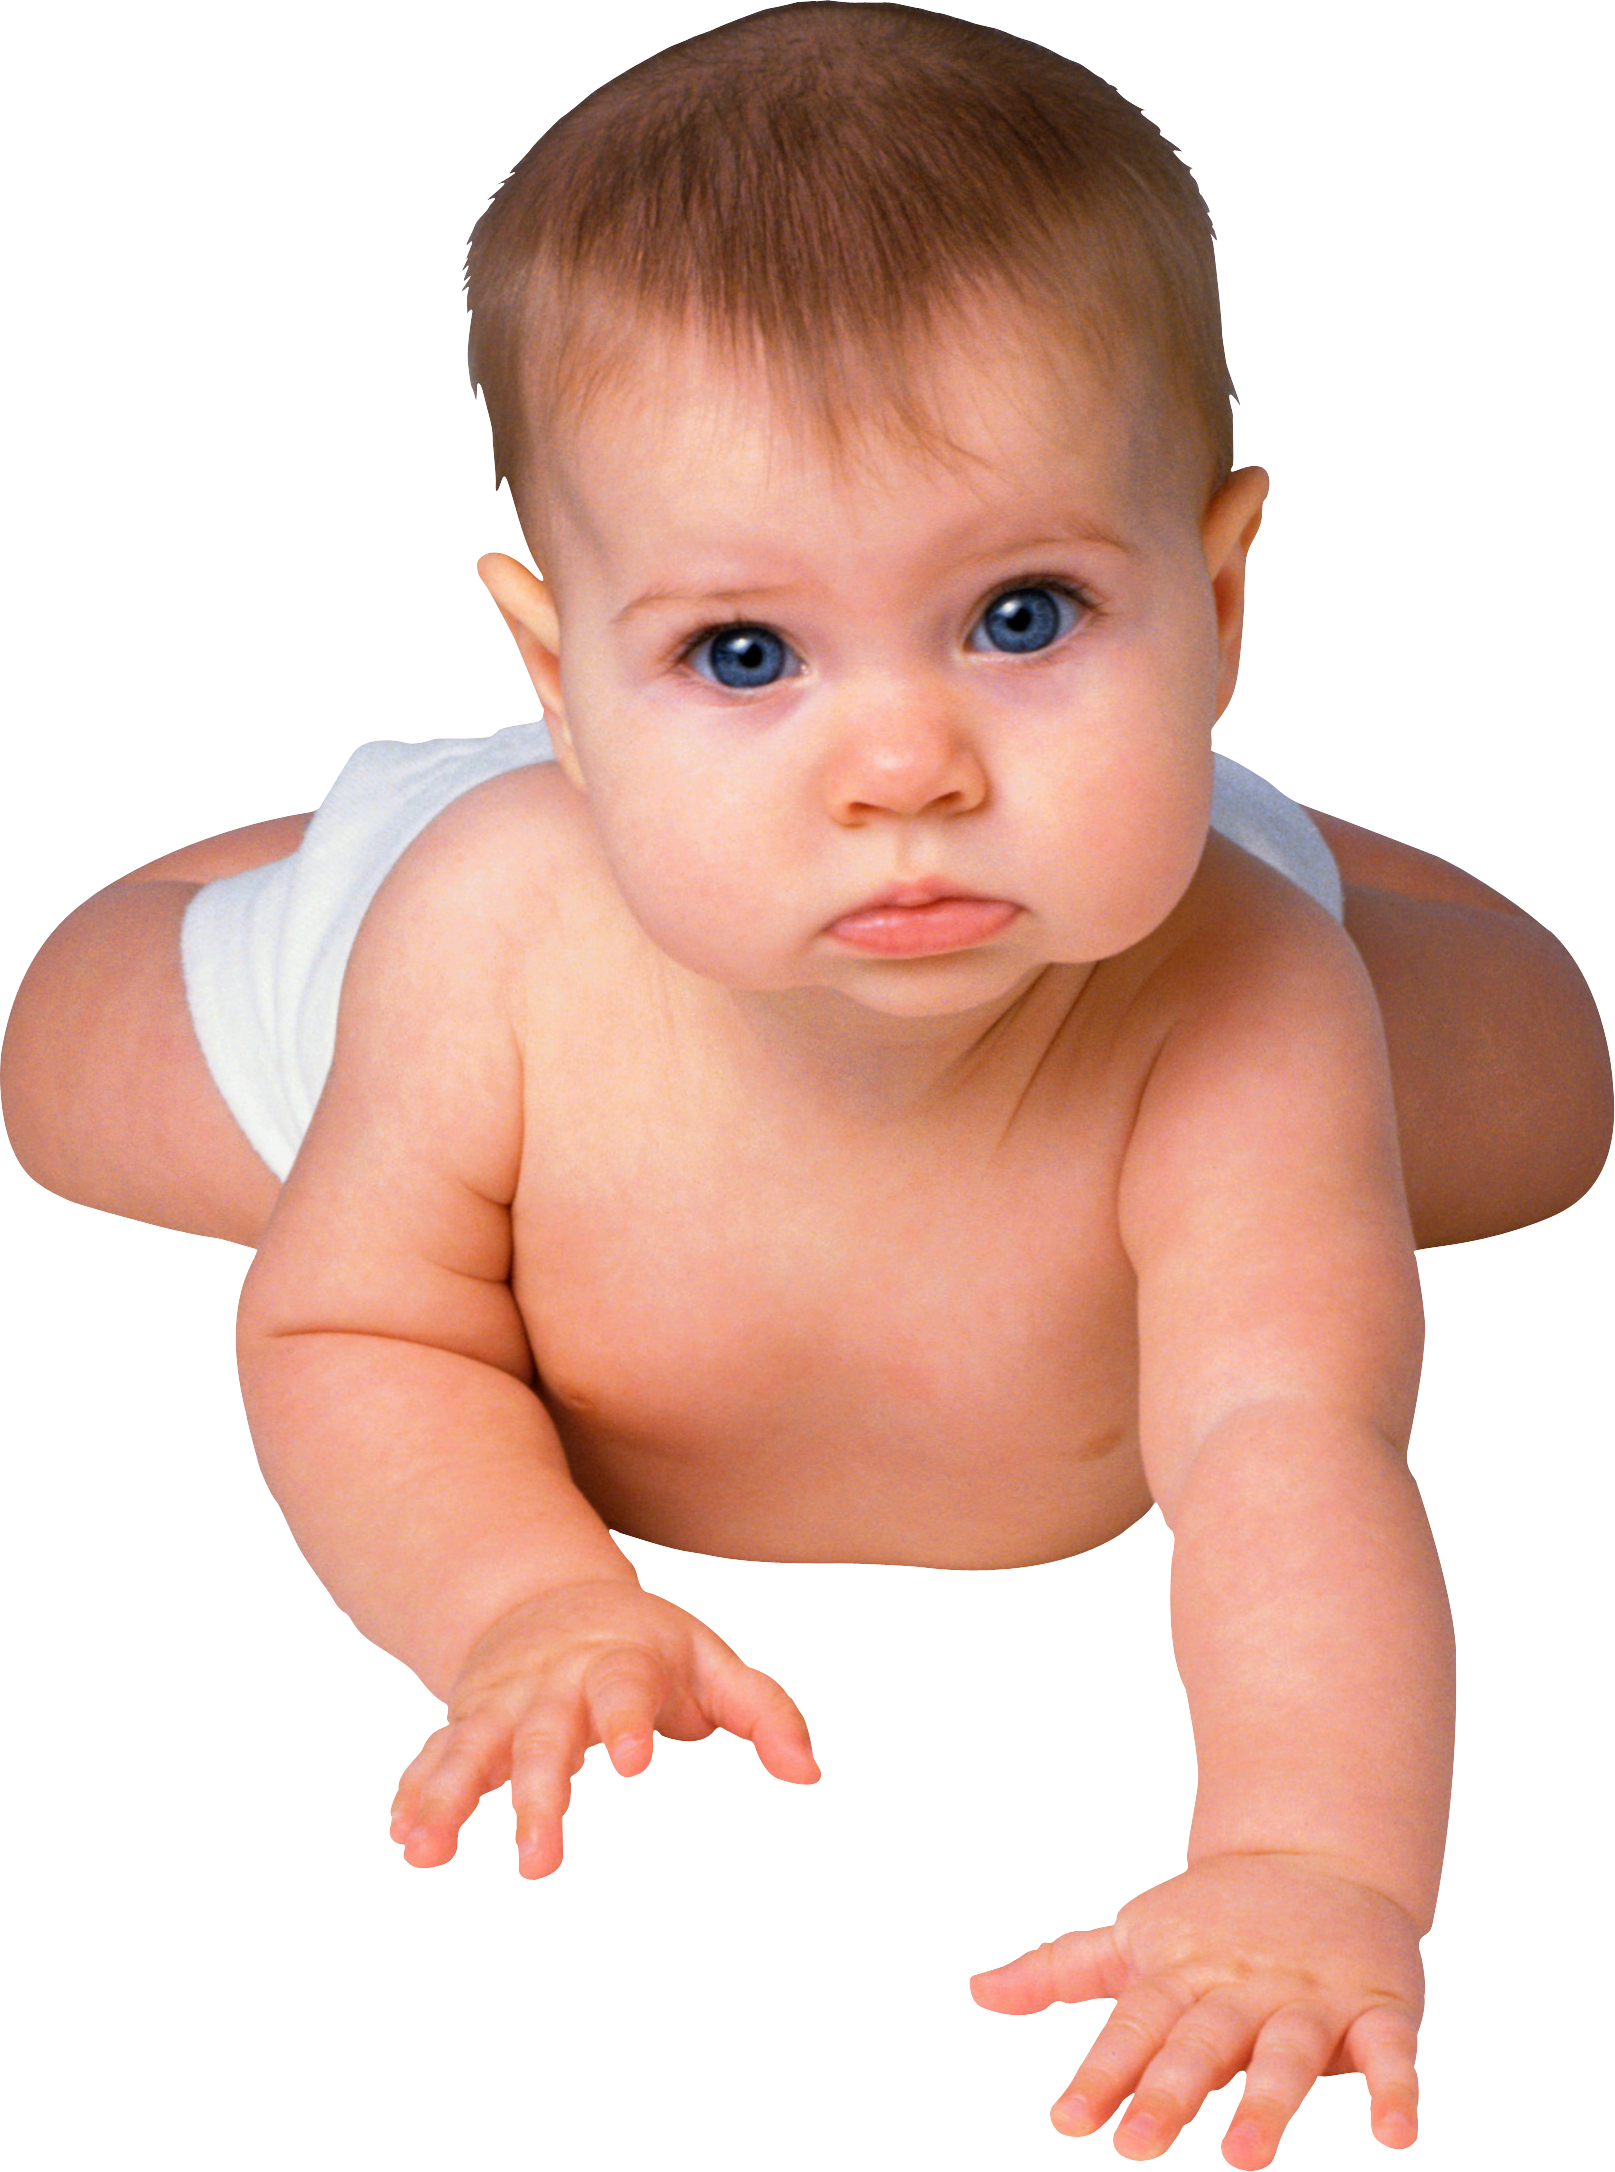 PNG HD Baby - 153818